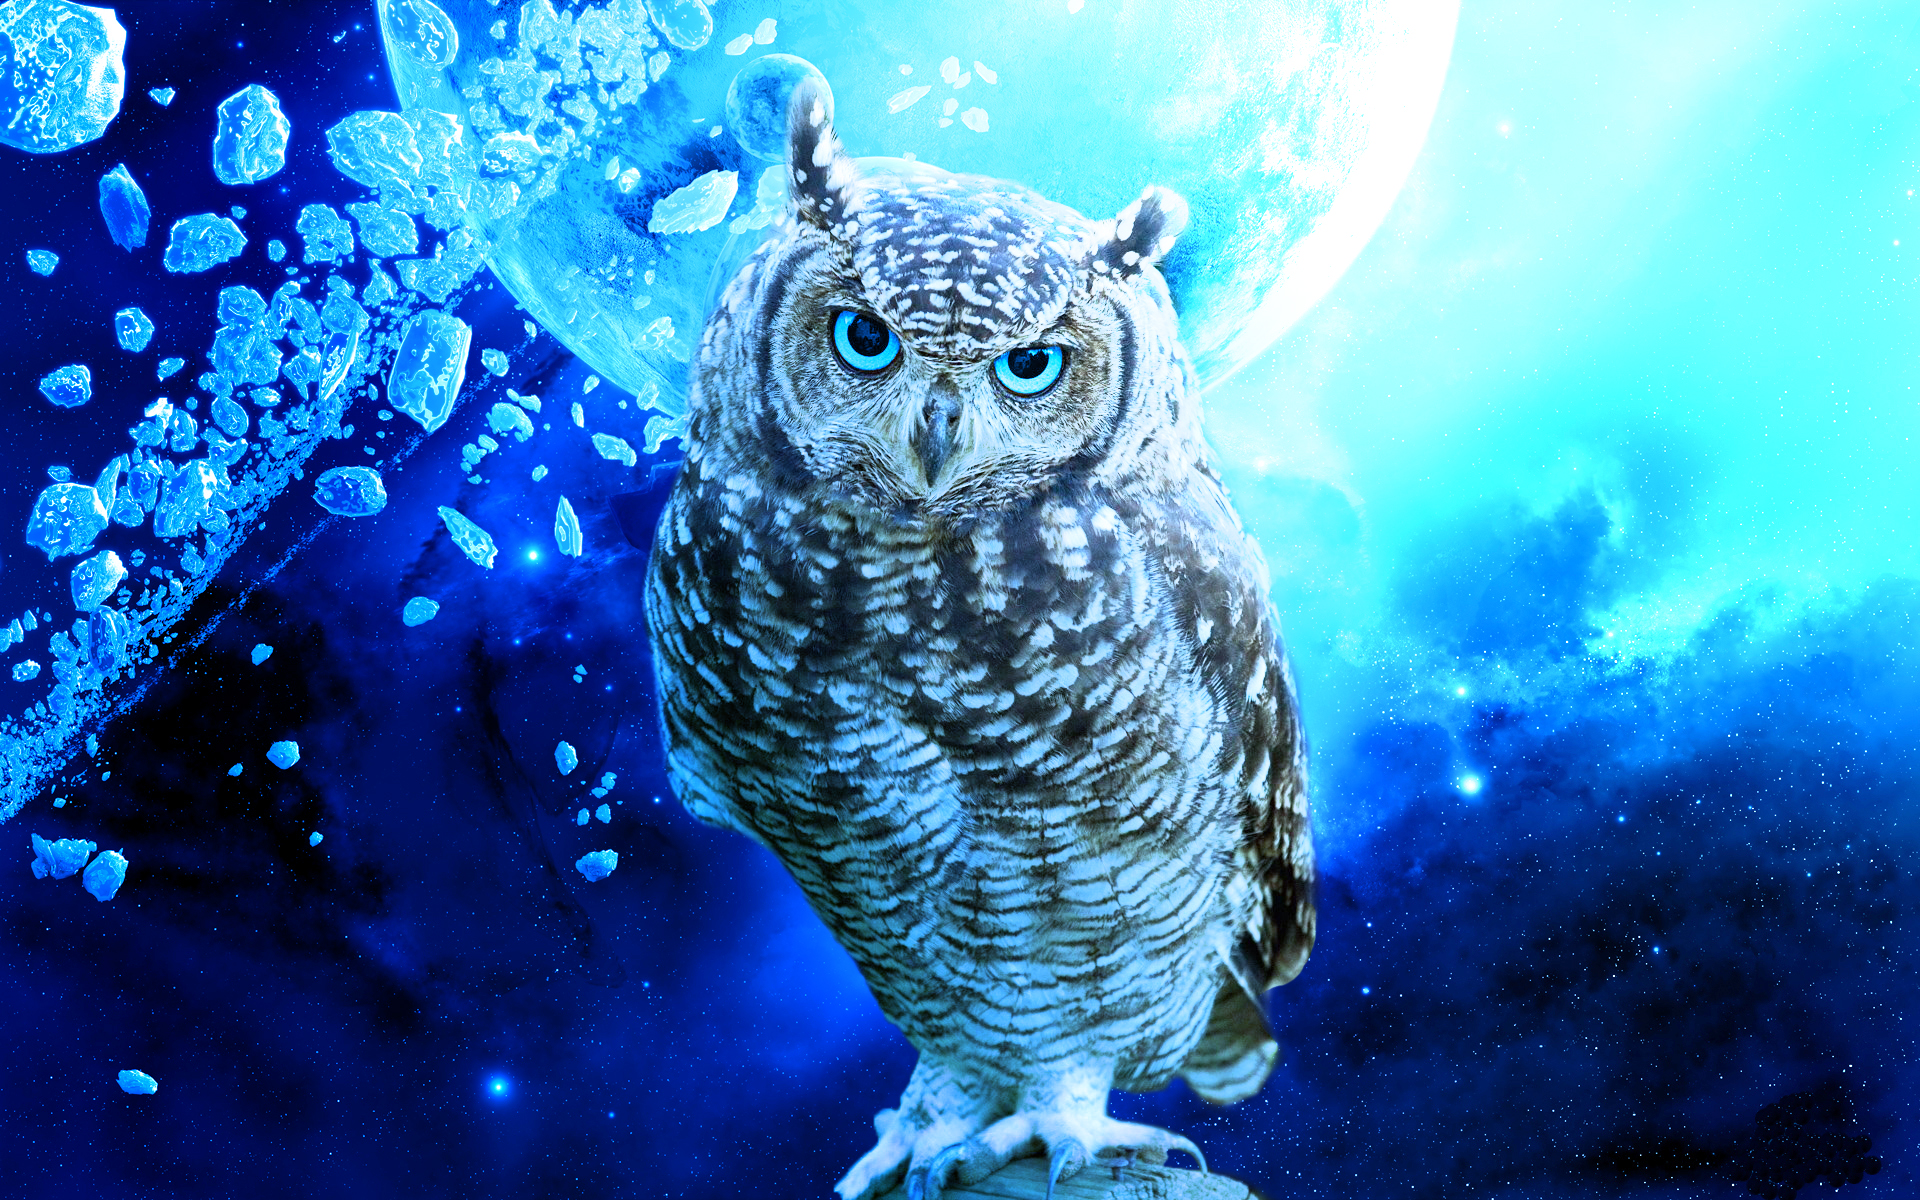 Owl Bird Stars Debris Blue Planet wallpaper | 1920x1200 | 219383